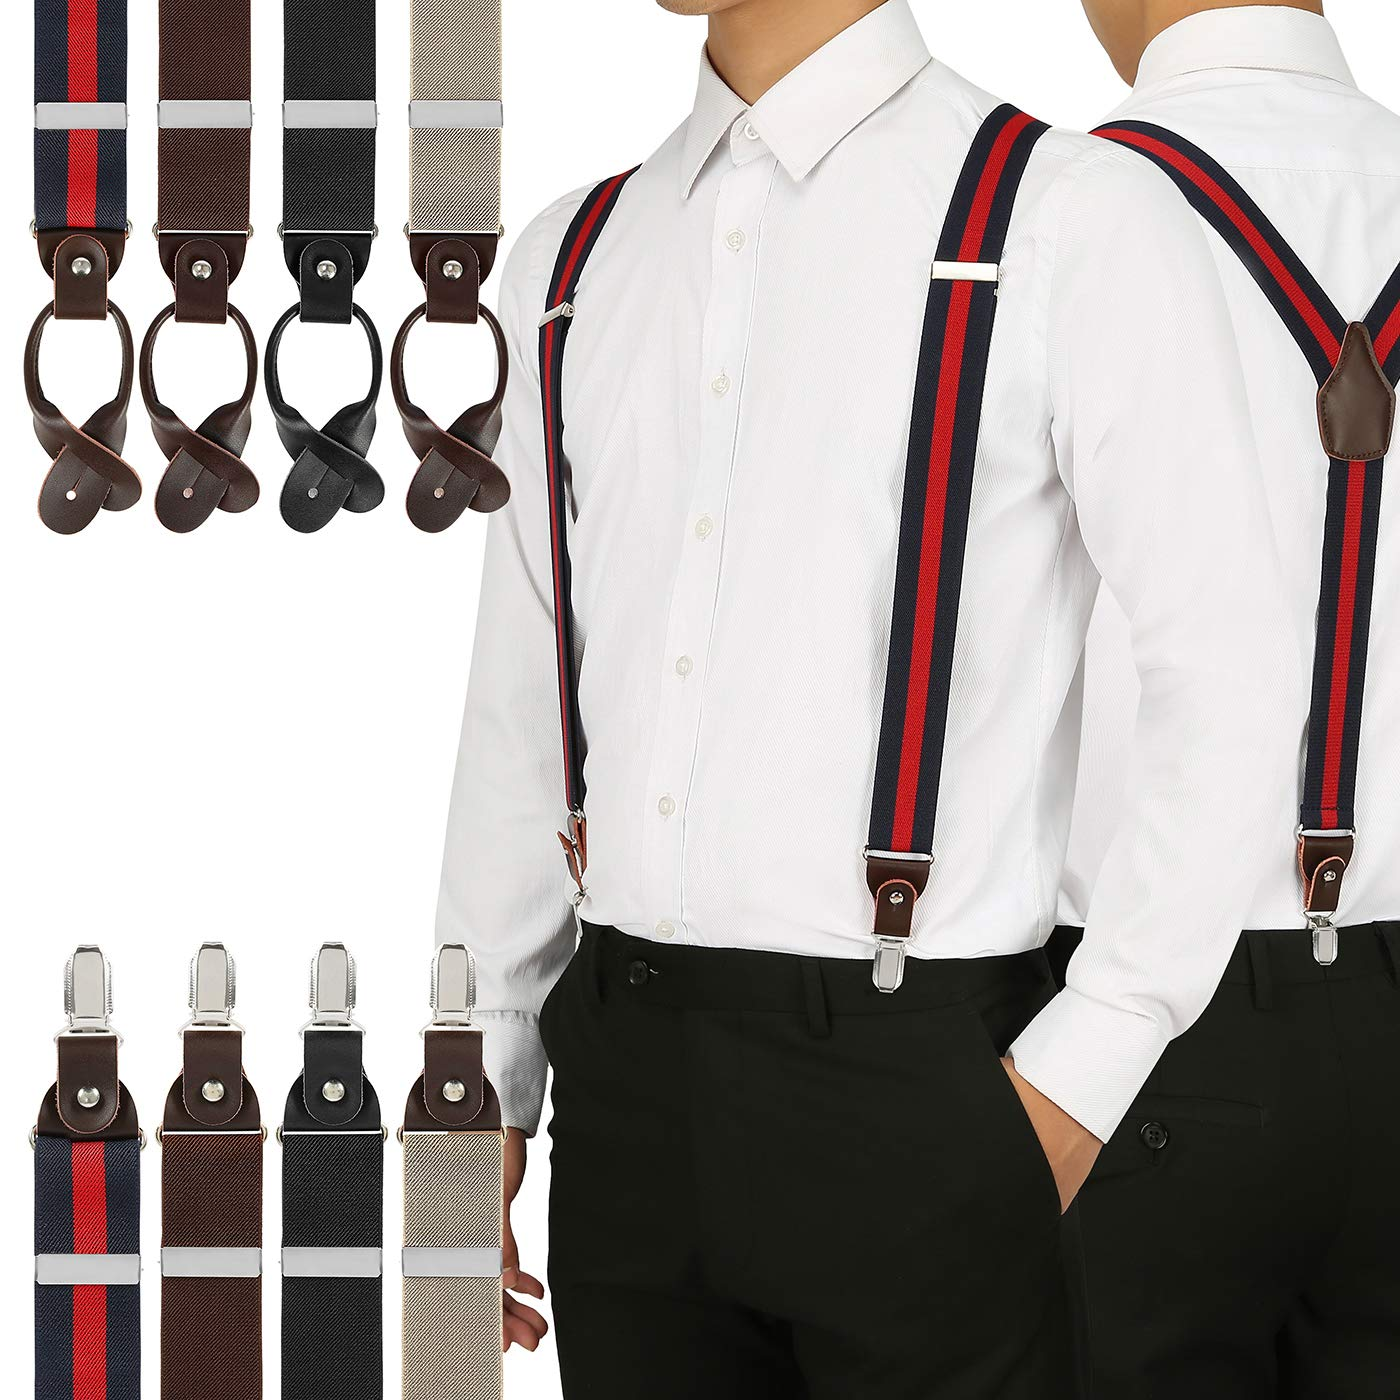 Button End Heavy Duty Metal Clip HDE Mens Suspenders Tuxedo Y-Back Pant Braces